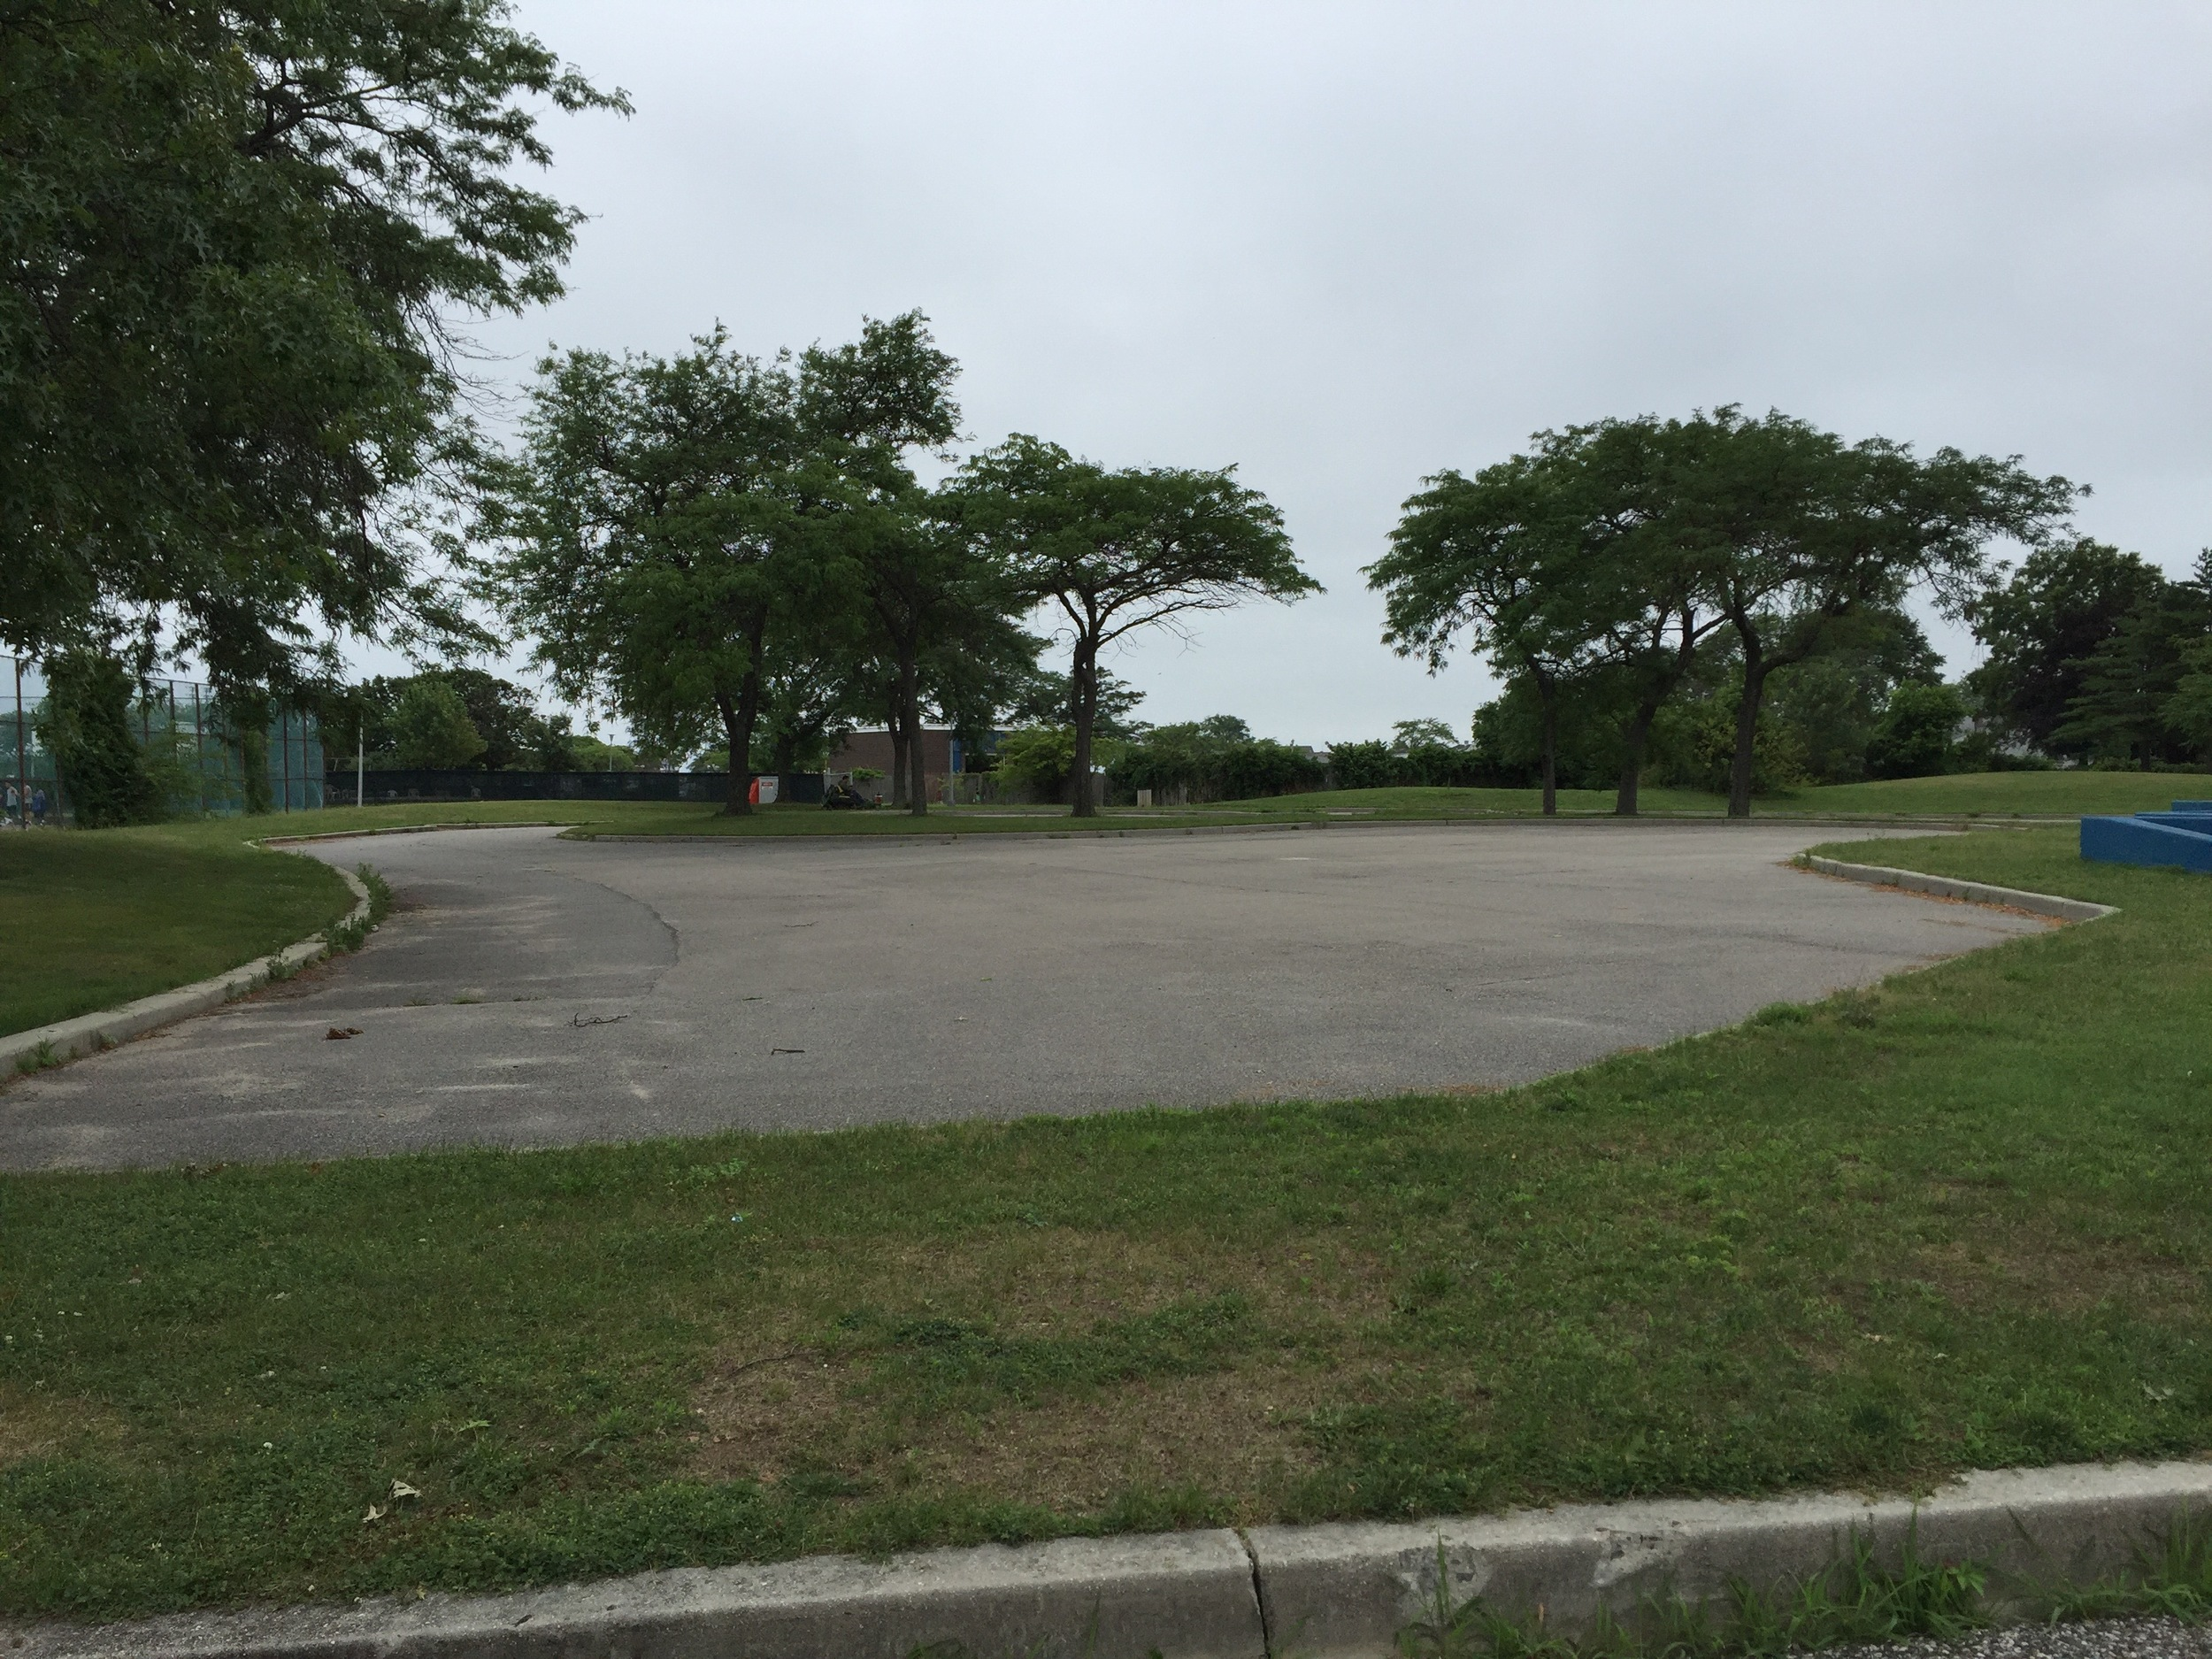 Marina playground skateboard area at Wantagh Park